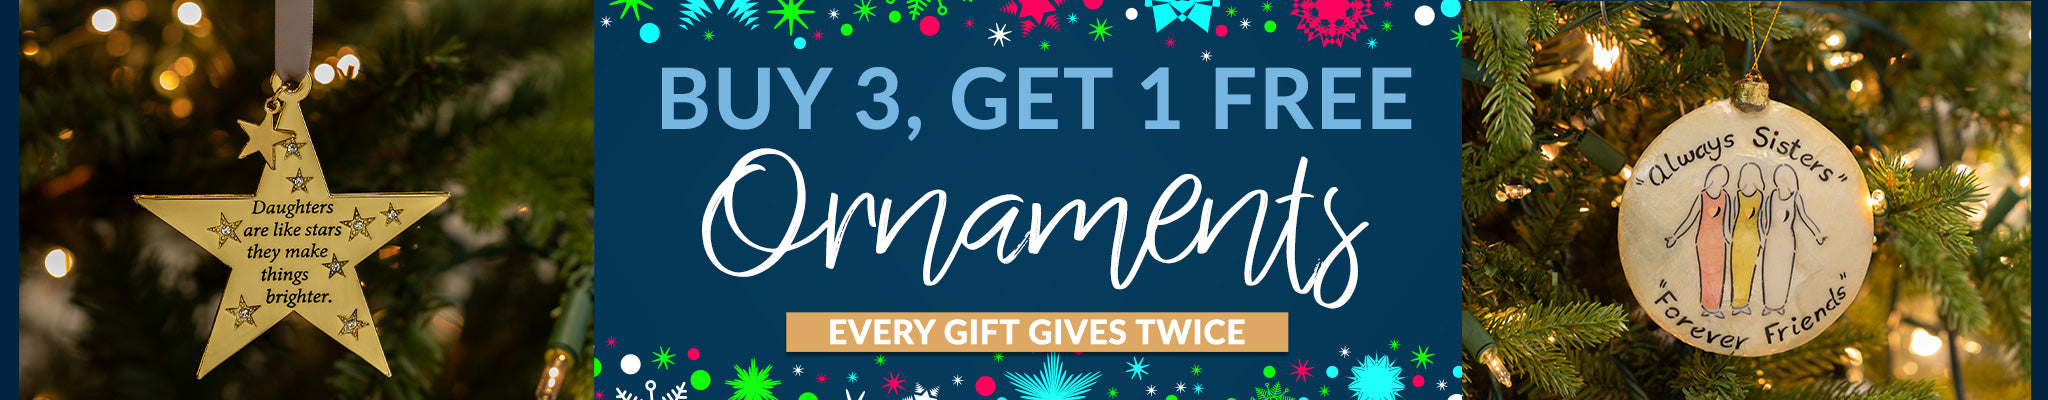 Buy 3, Get 1 FREE Ornaments | Every Gift Gives Twice